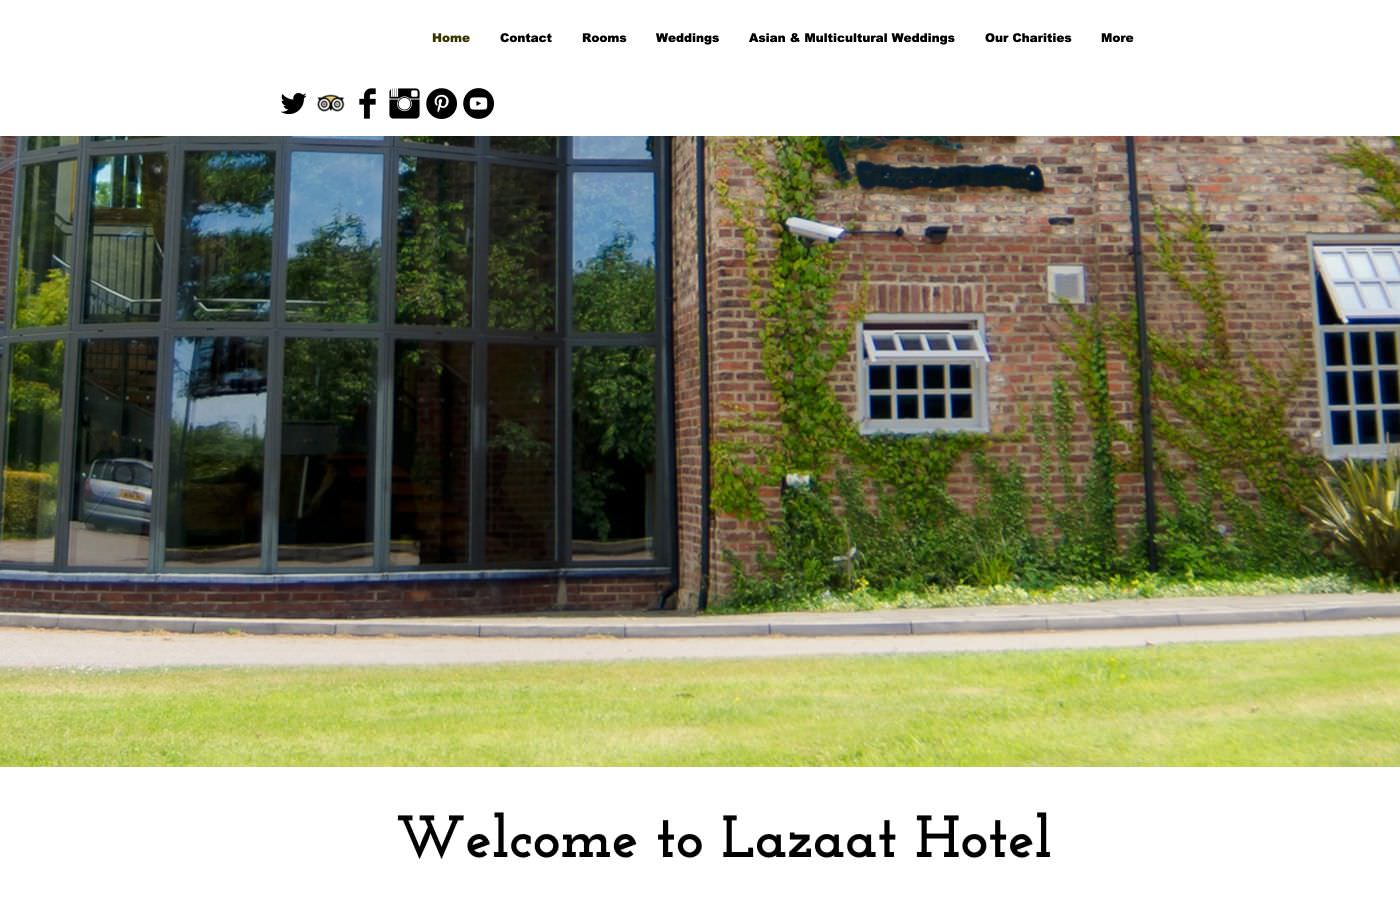 Lazaat website homepage screenshot